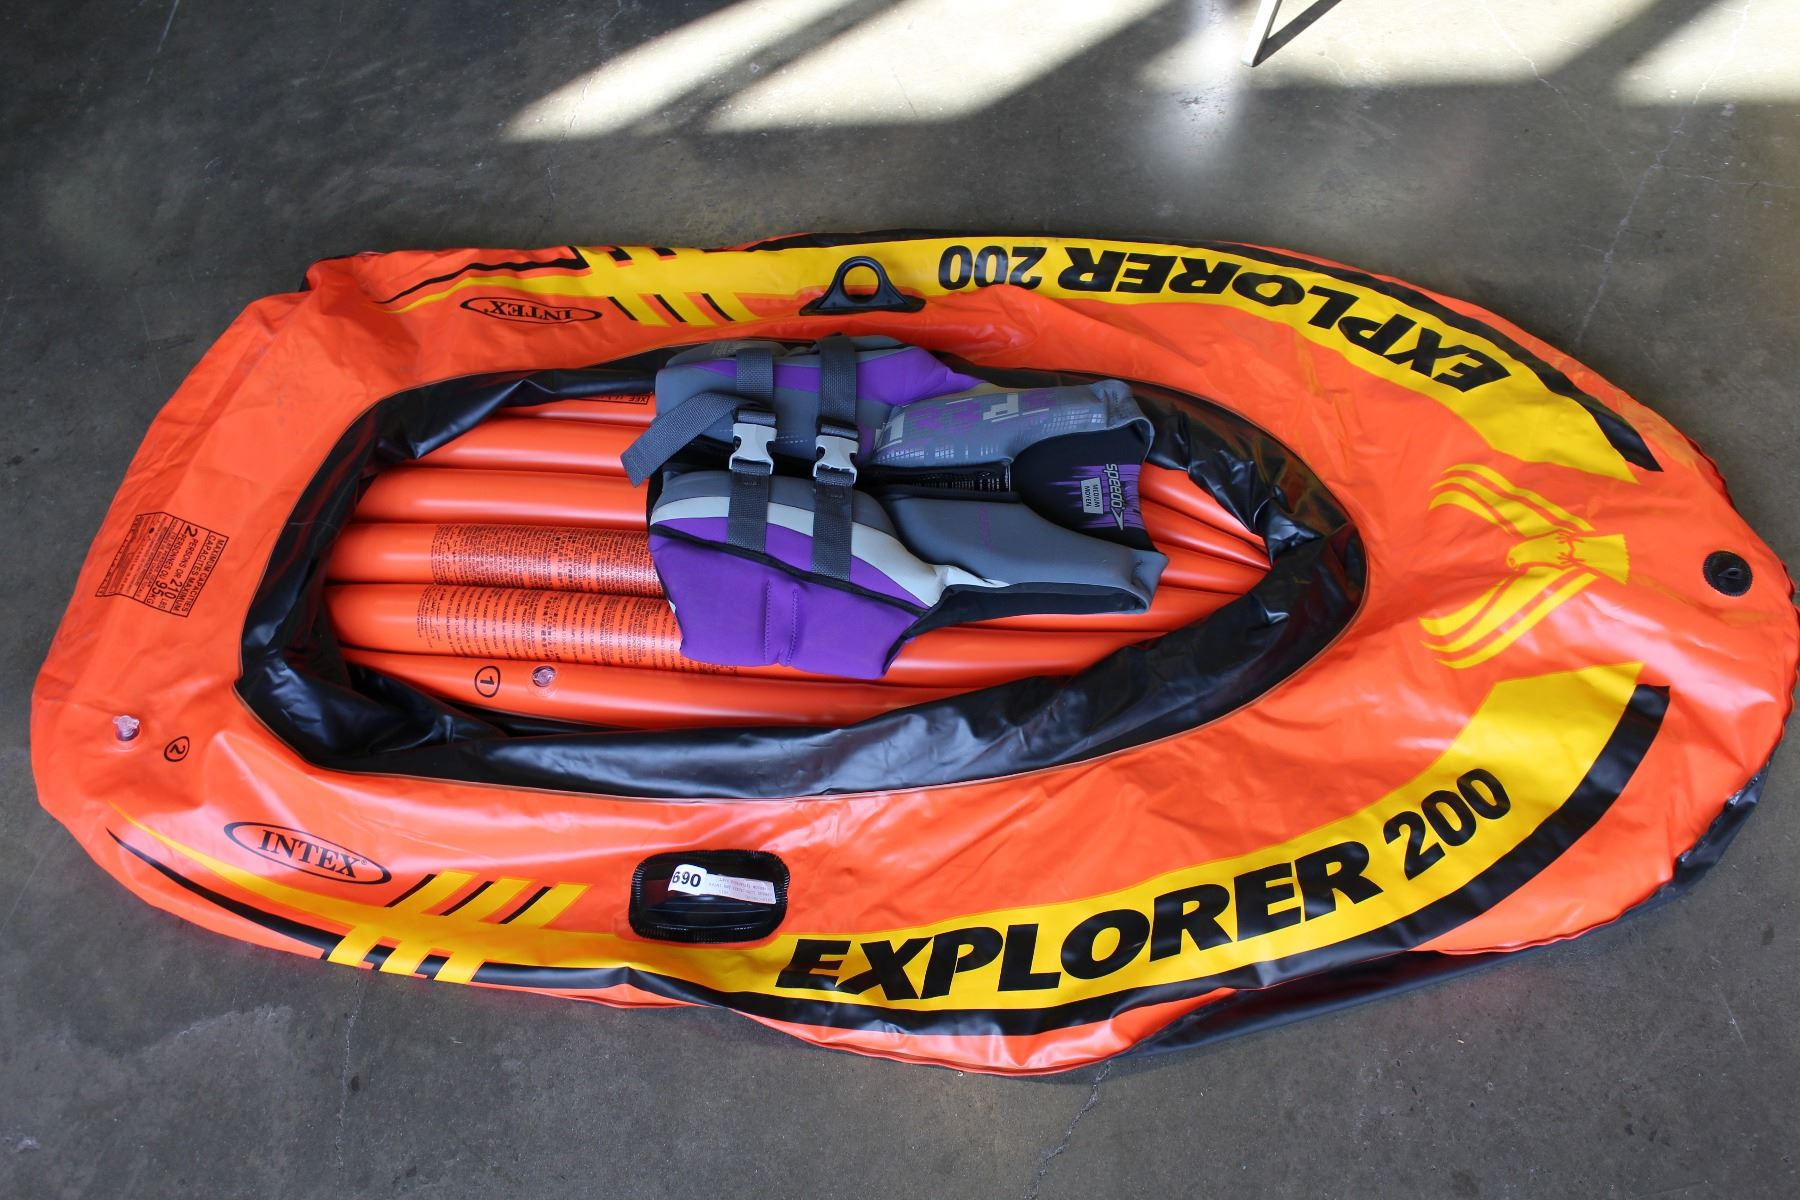 SPEEDO LIFE JACKET AND INTEX 2-PERSON INFLATABLE RAFT